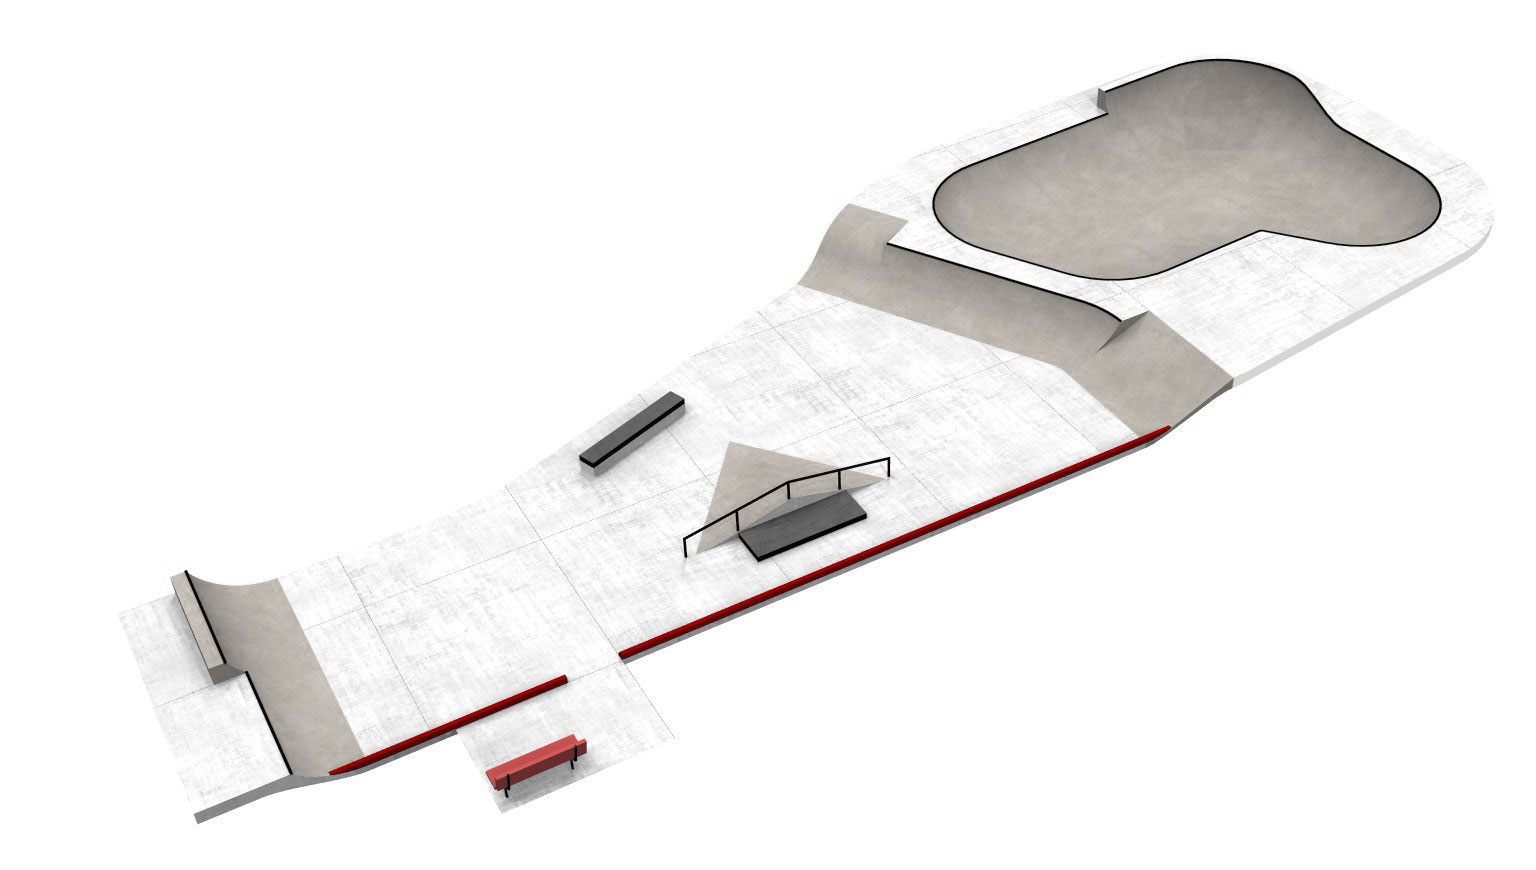 The skate park as it is currently designed.